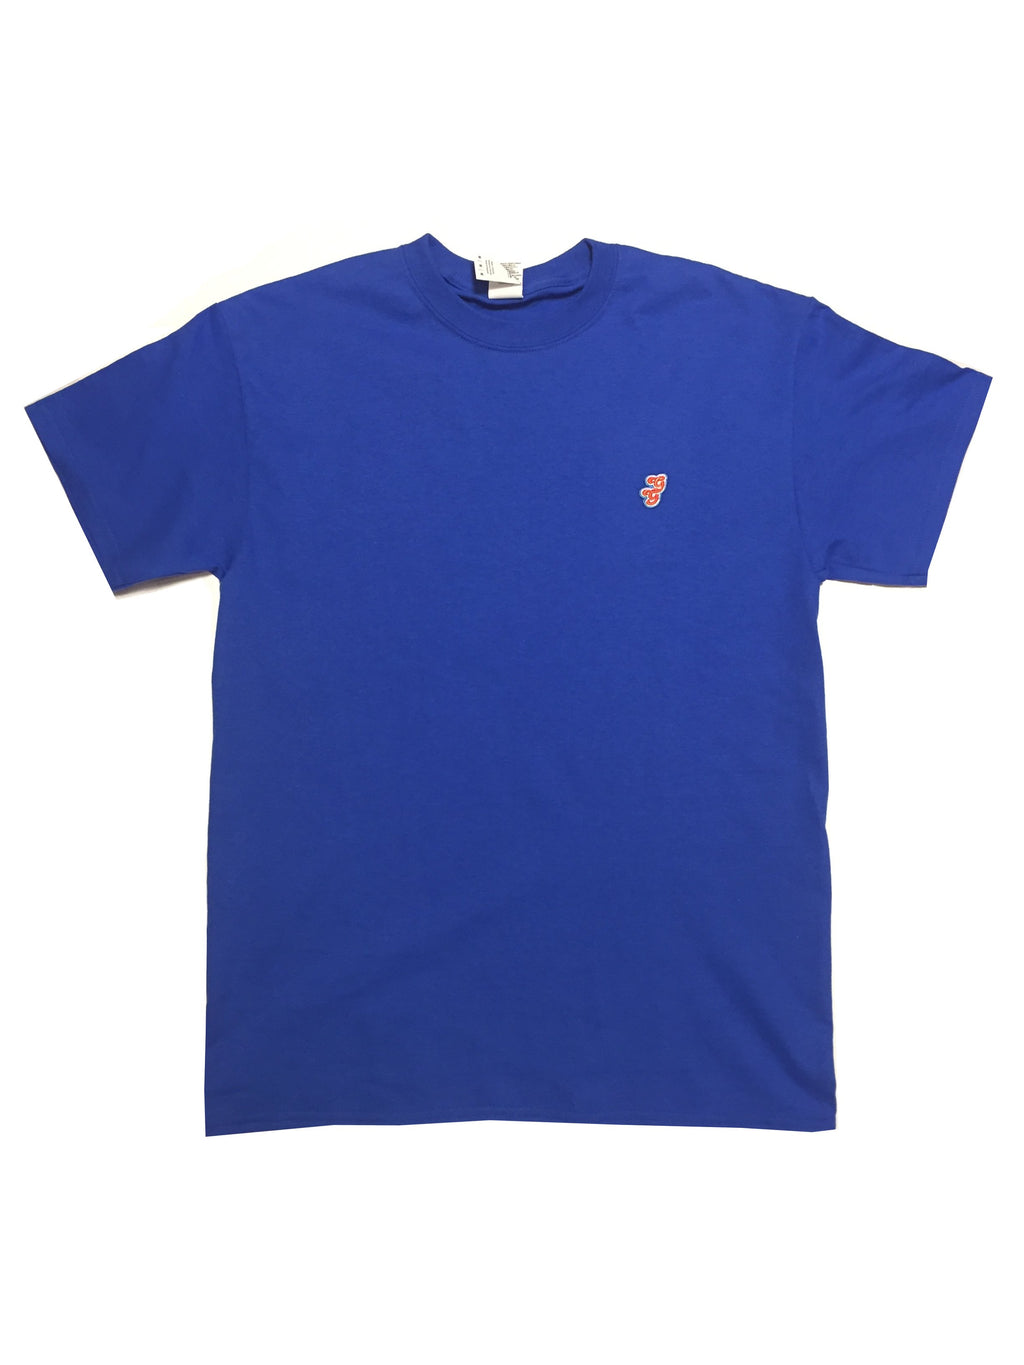 GG Blue T-Shirt with Initials (Men & Women)